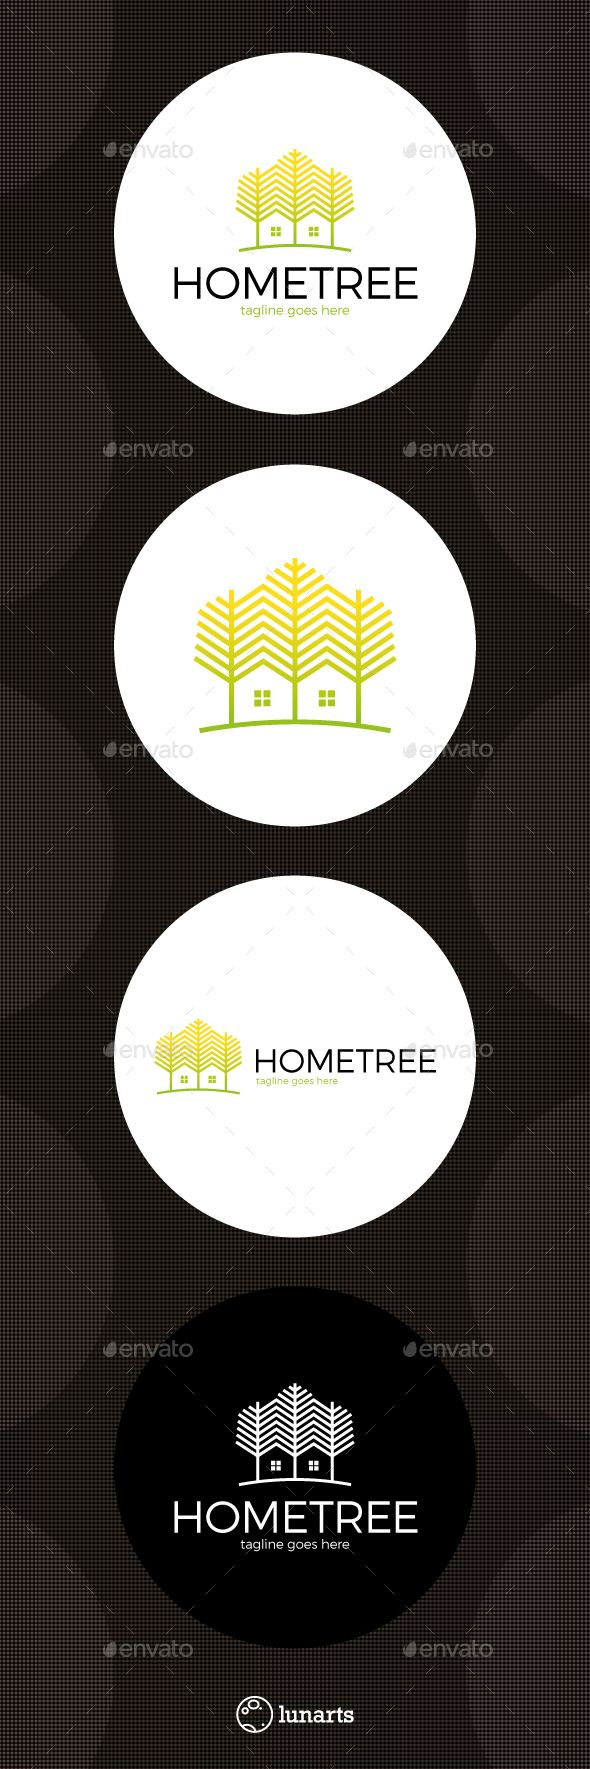 Below are two different file formats of the superman logo in a beveled - Tree Line Home Logo